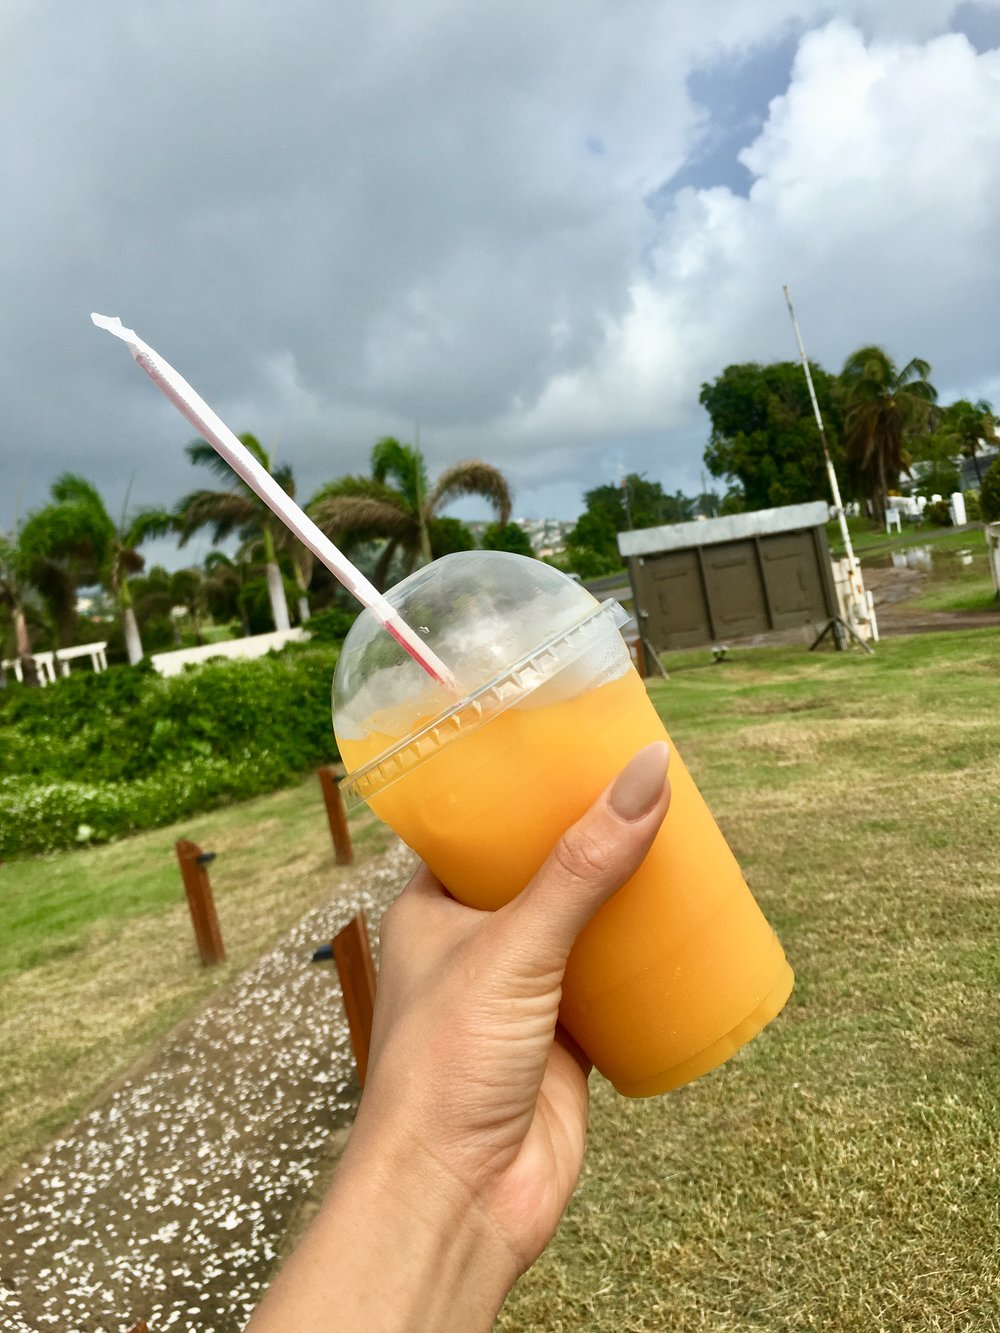 Fresh mango juice - A locally owned coffee shop grows mangos behind the shop to make fresh mango juice every morning.